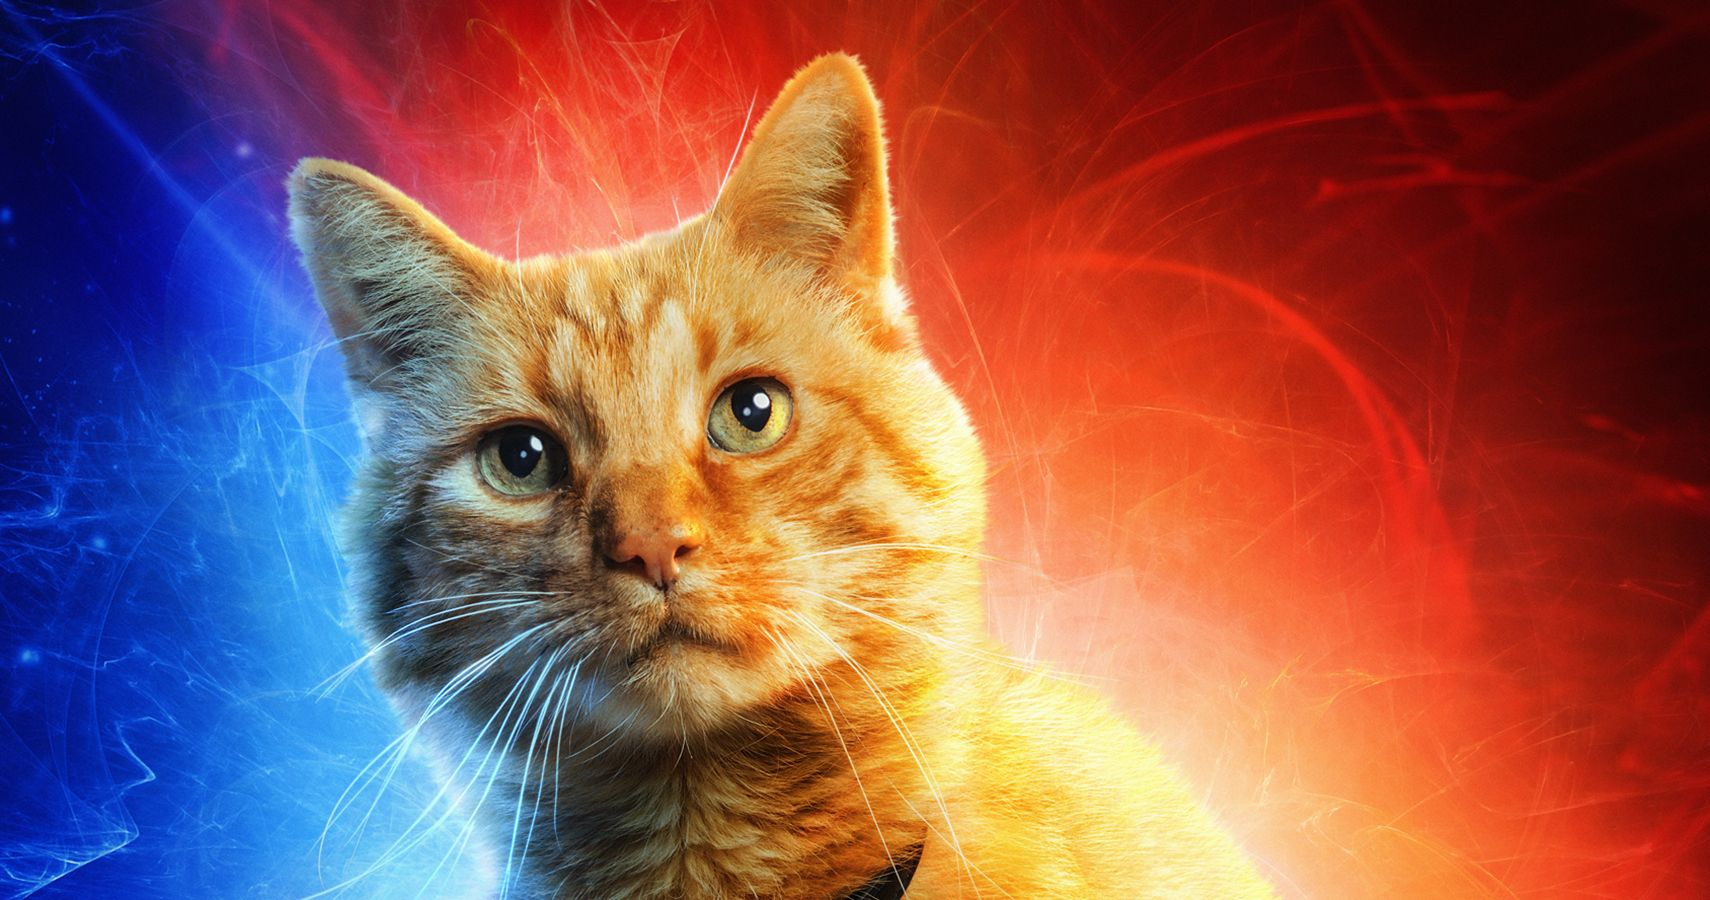 Goose Captain Marvel S Cat Is Adorable But What Else Is